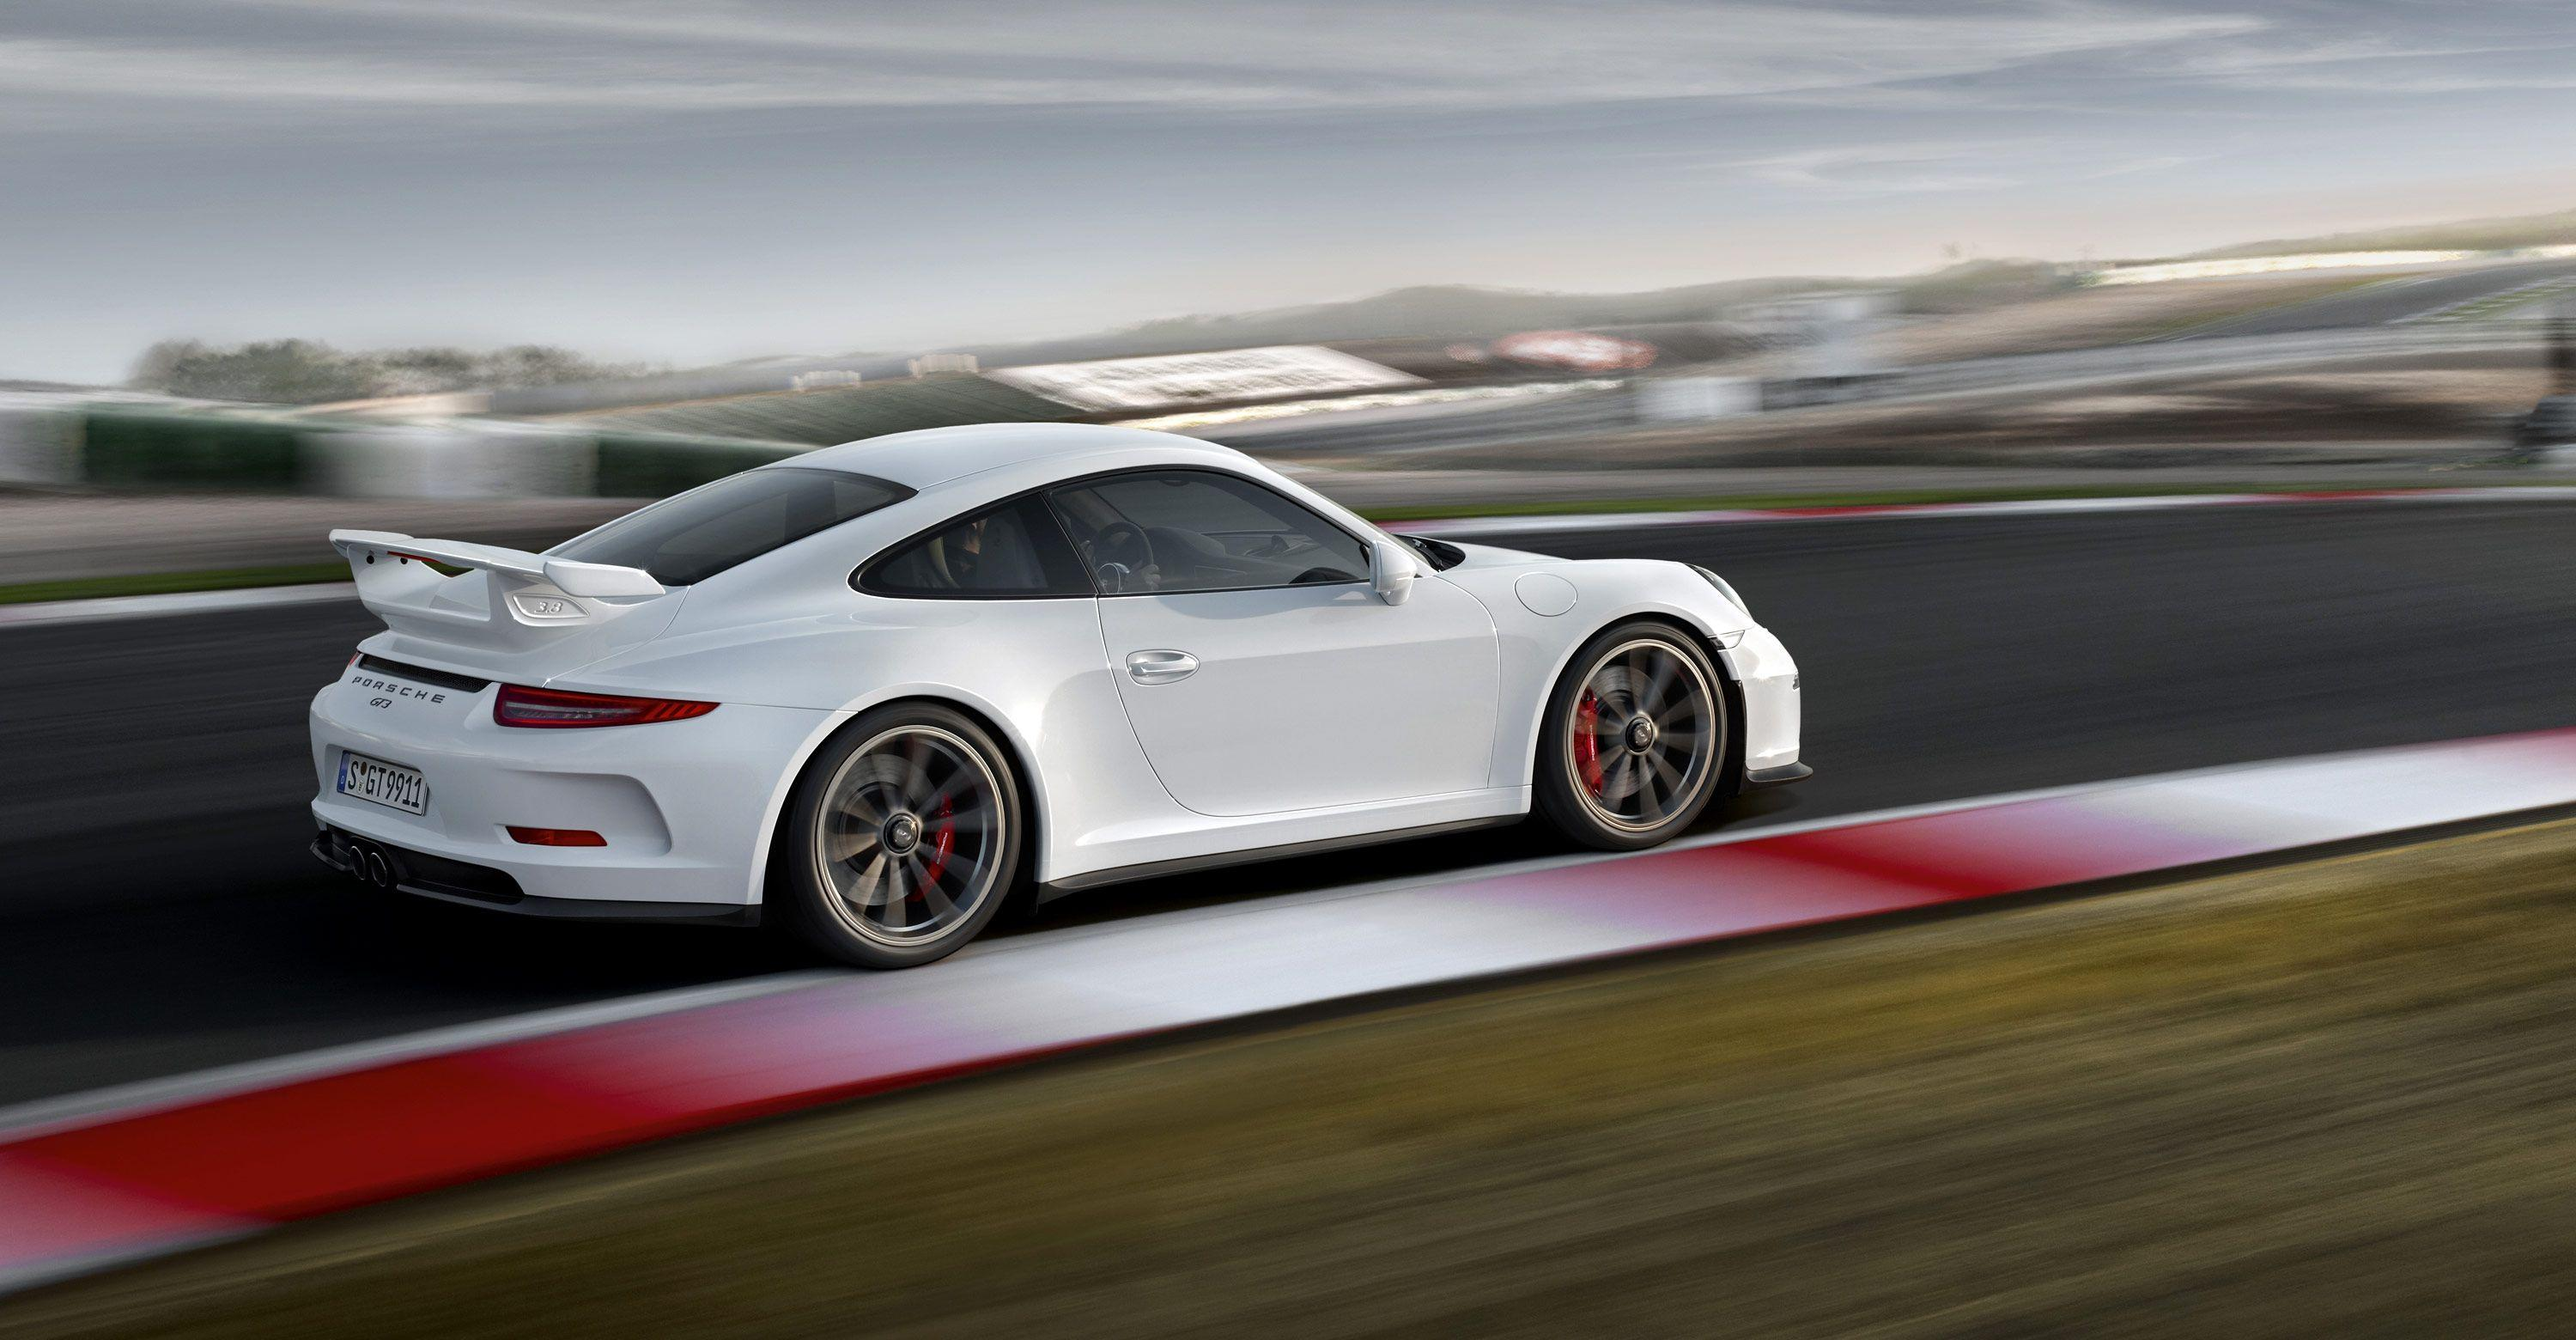 Porsche GT3 Wallpapers 3000x1560